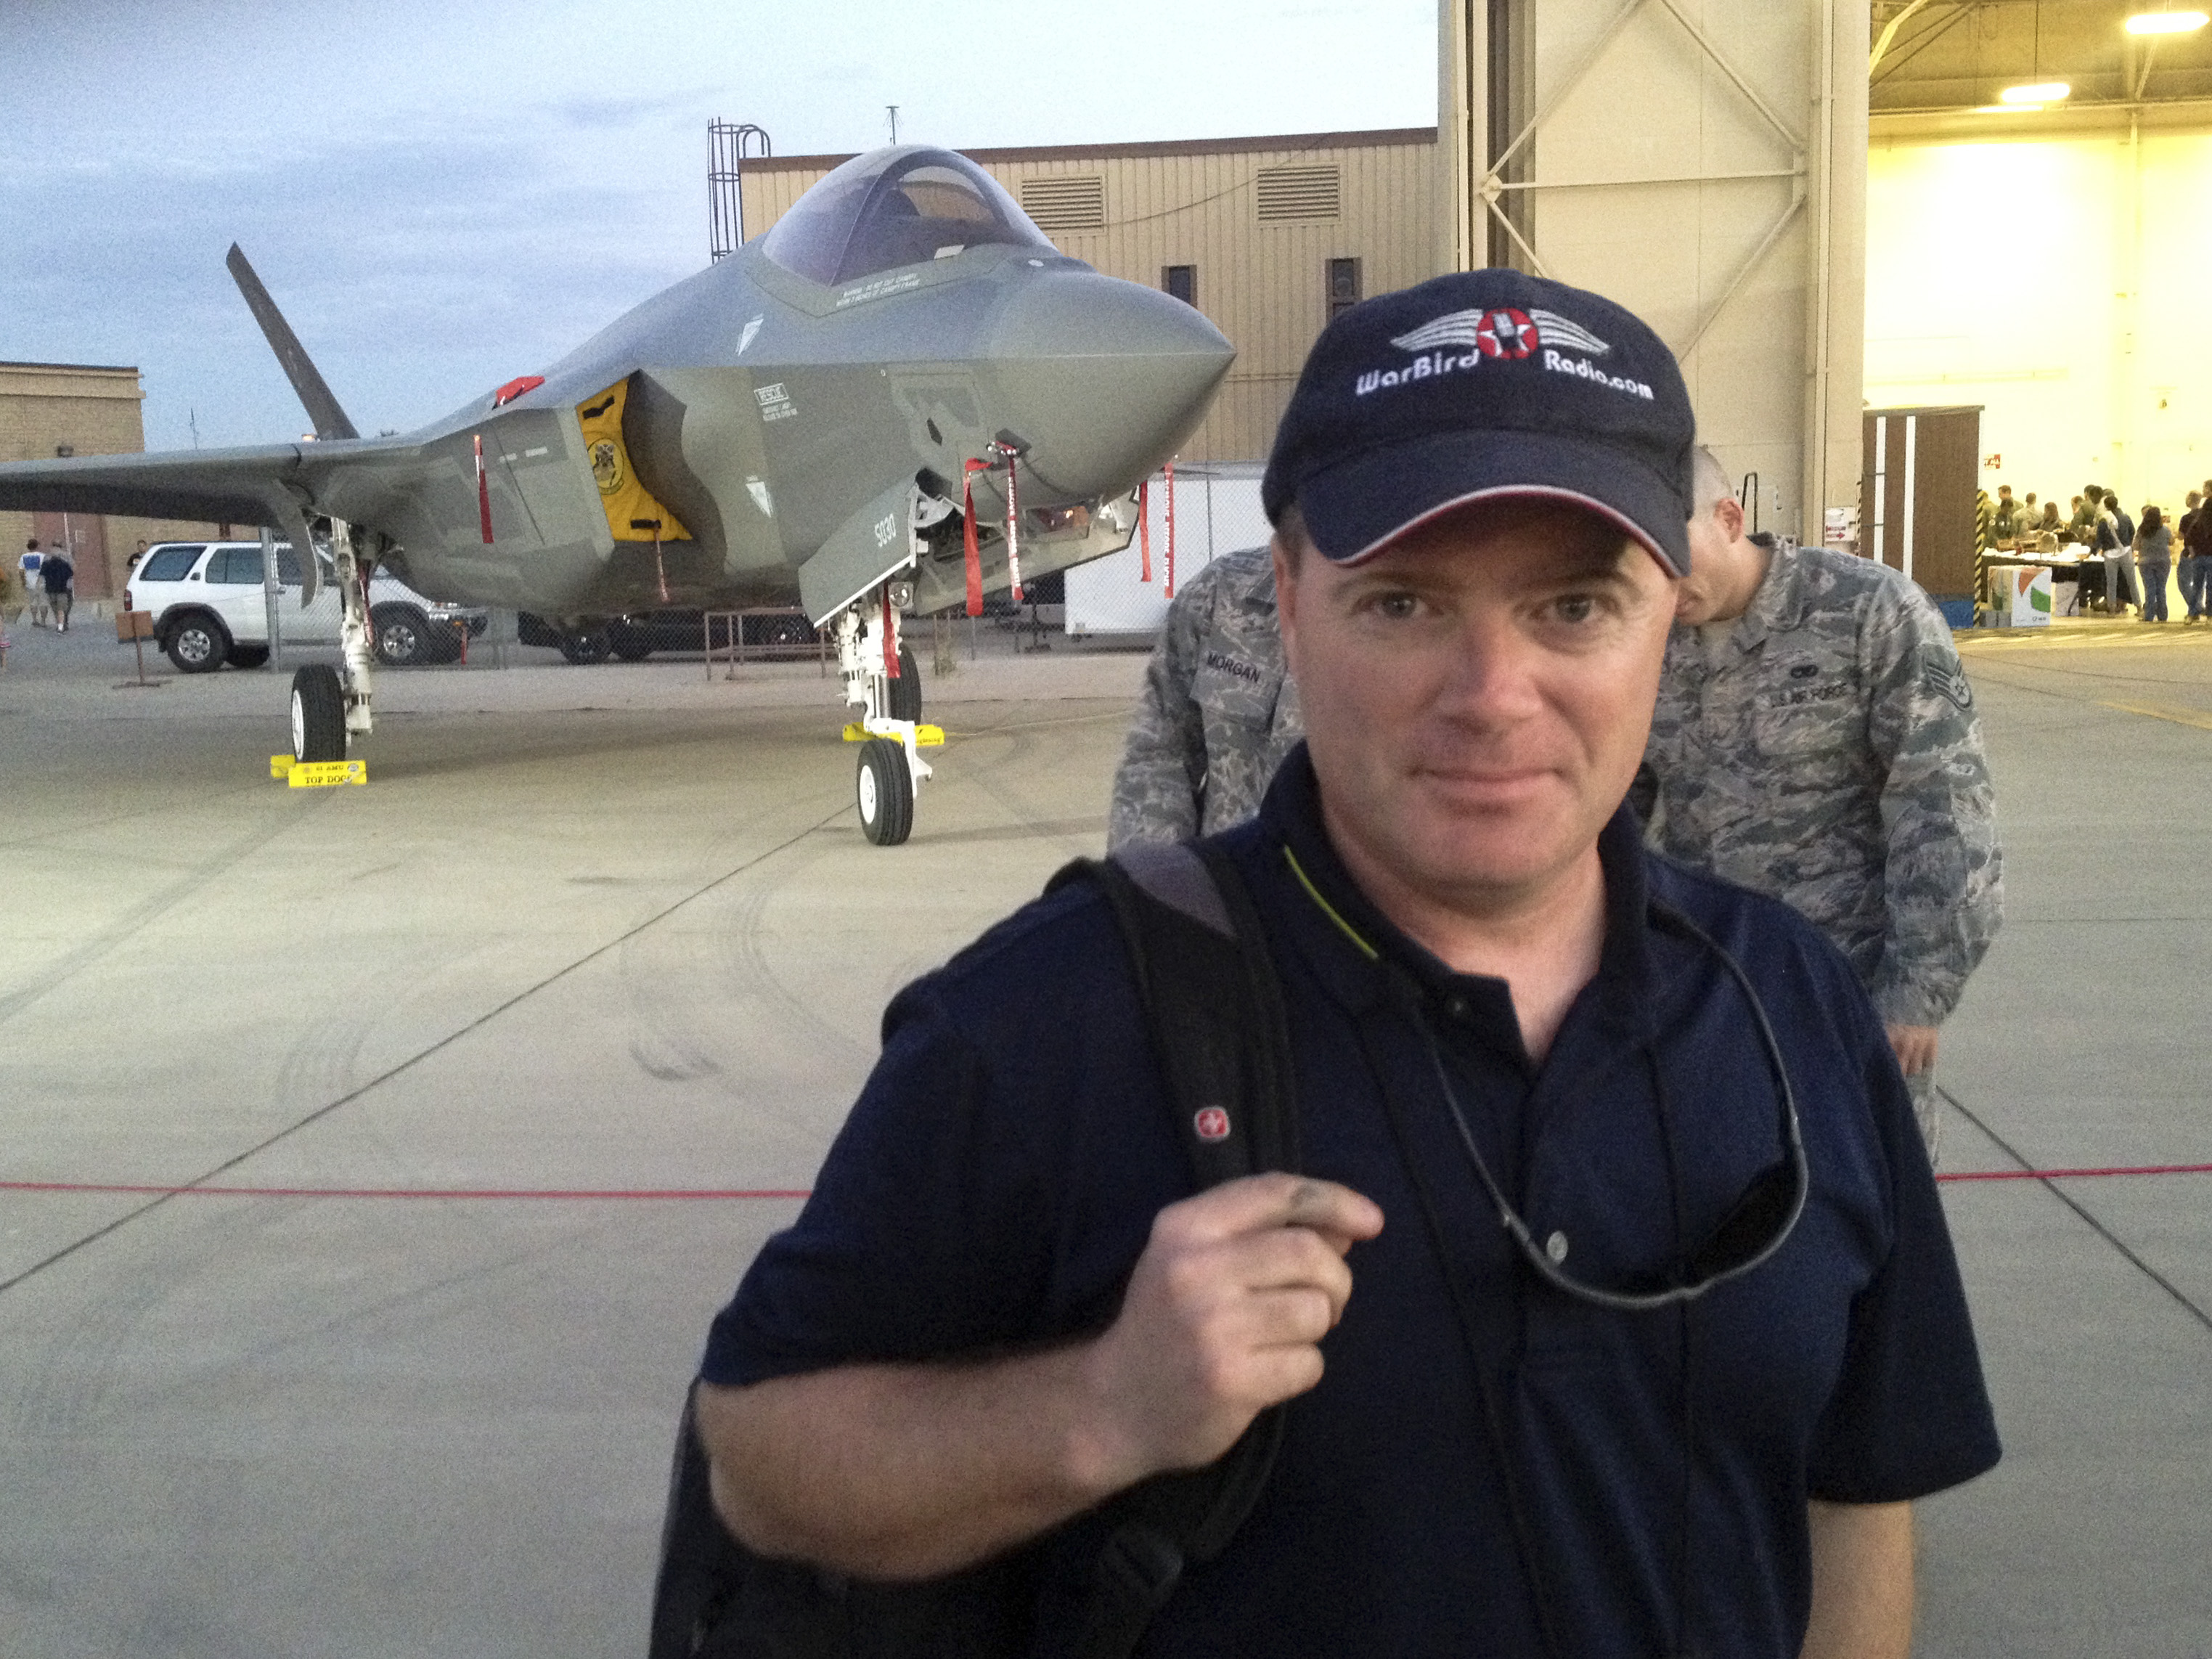 Matt Jolley at the Luke AFB air show in March, 2014 with the F-35A behind him. (photo via Matt Jolley)